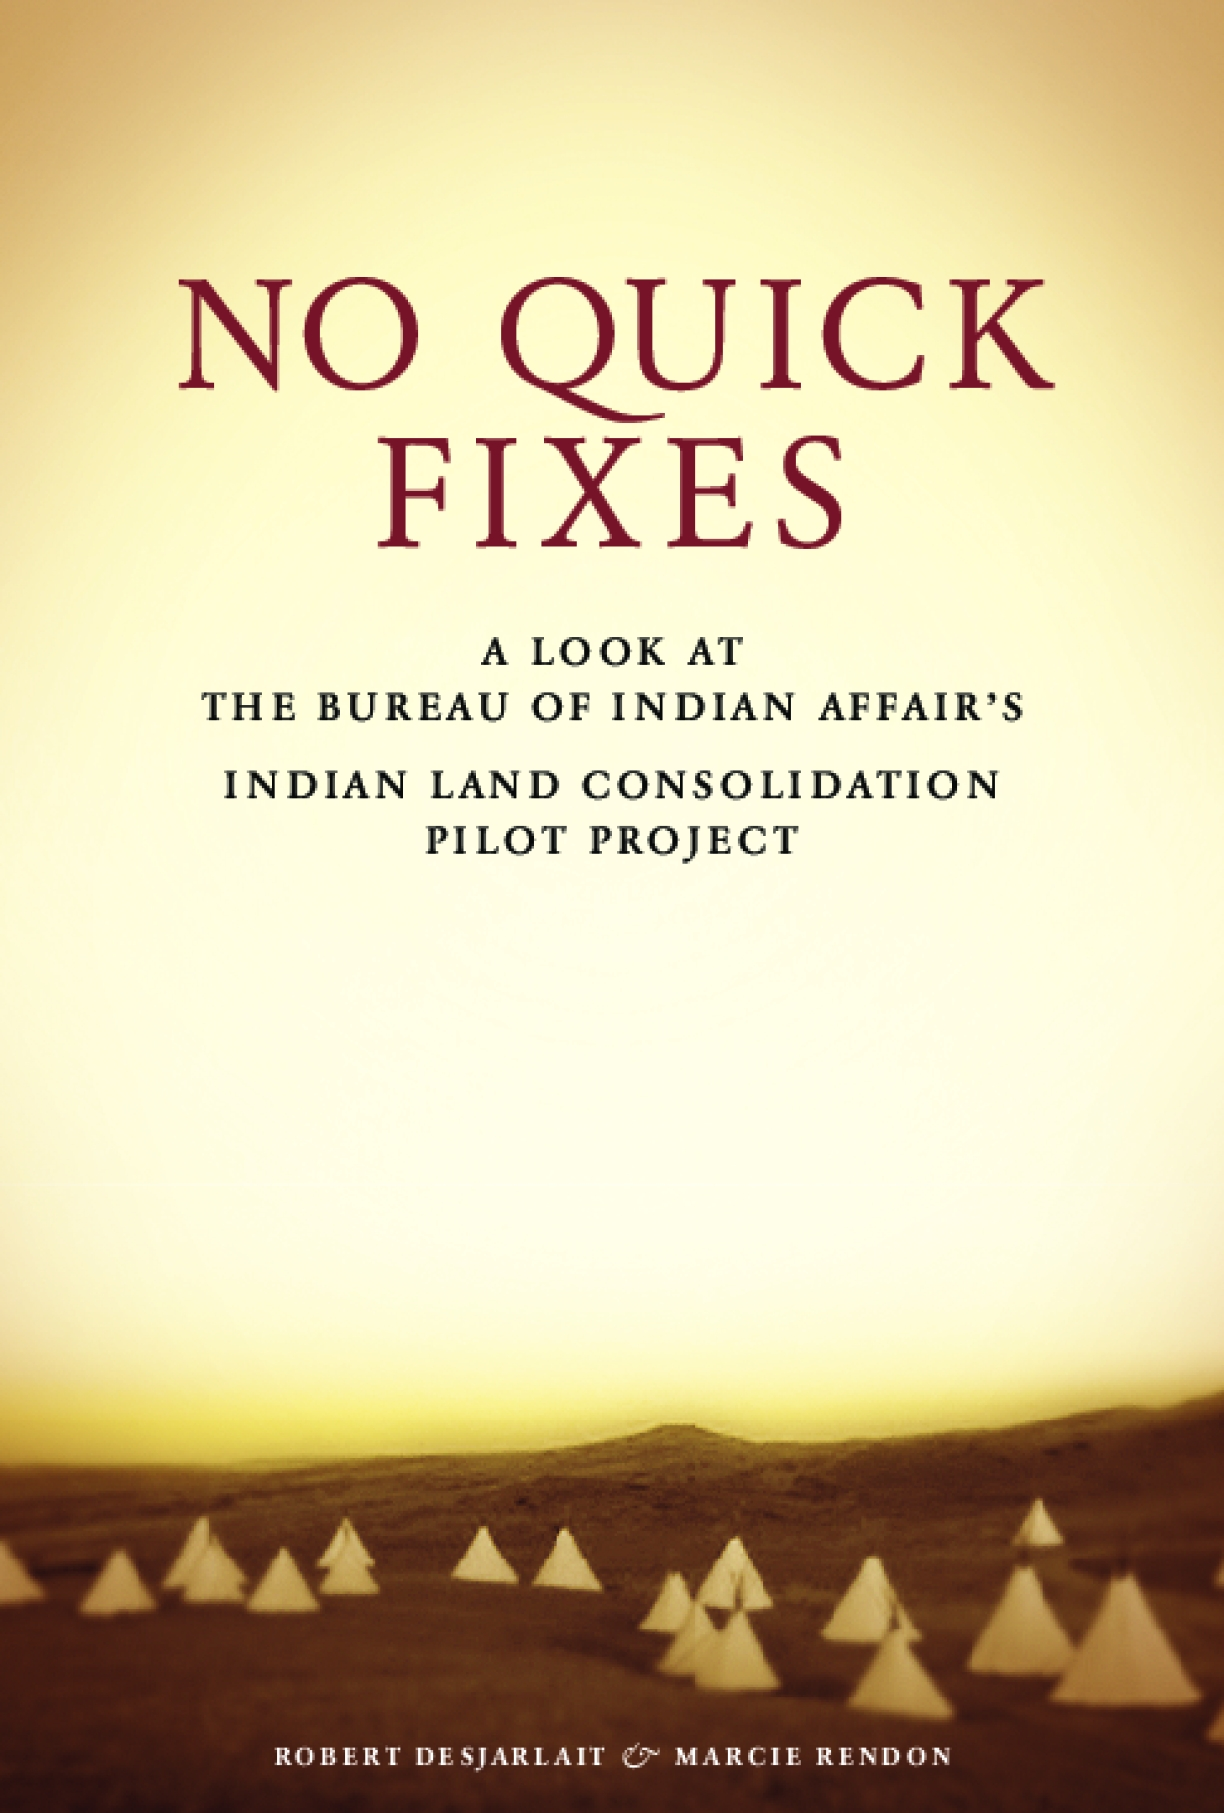 No Quick Fixes: A Look at the Bureau of Indian Affair's Indian Land Consolidation Pilot Project